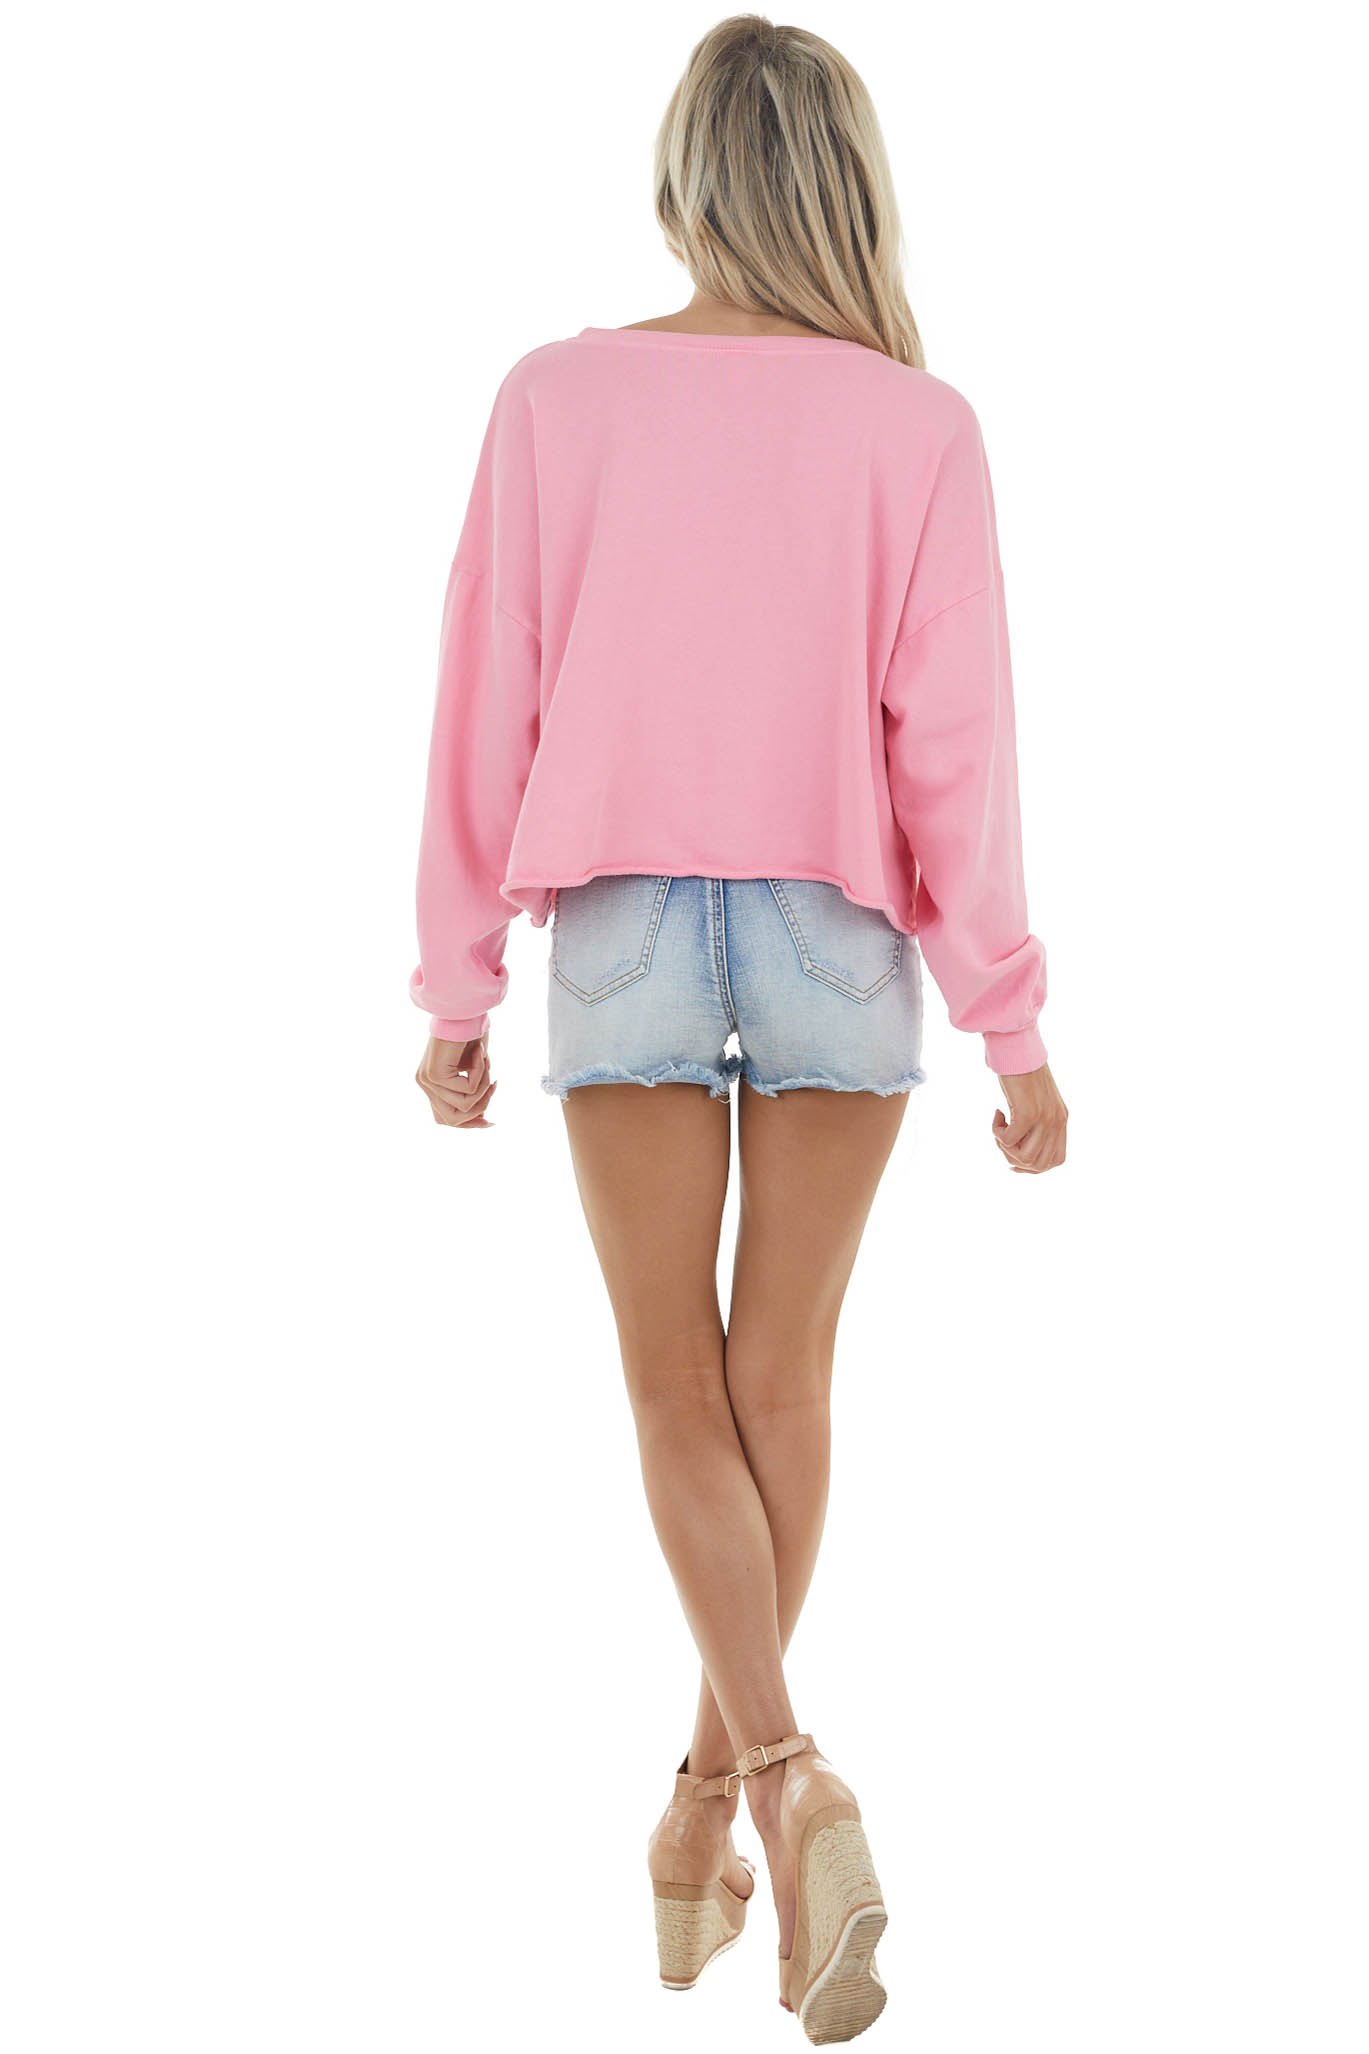 Carnation Adventure Graphic Sweatshirt with Rolled Hemline